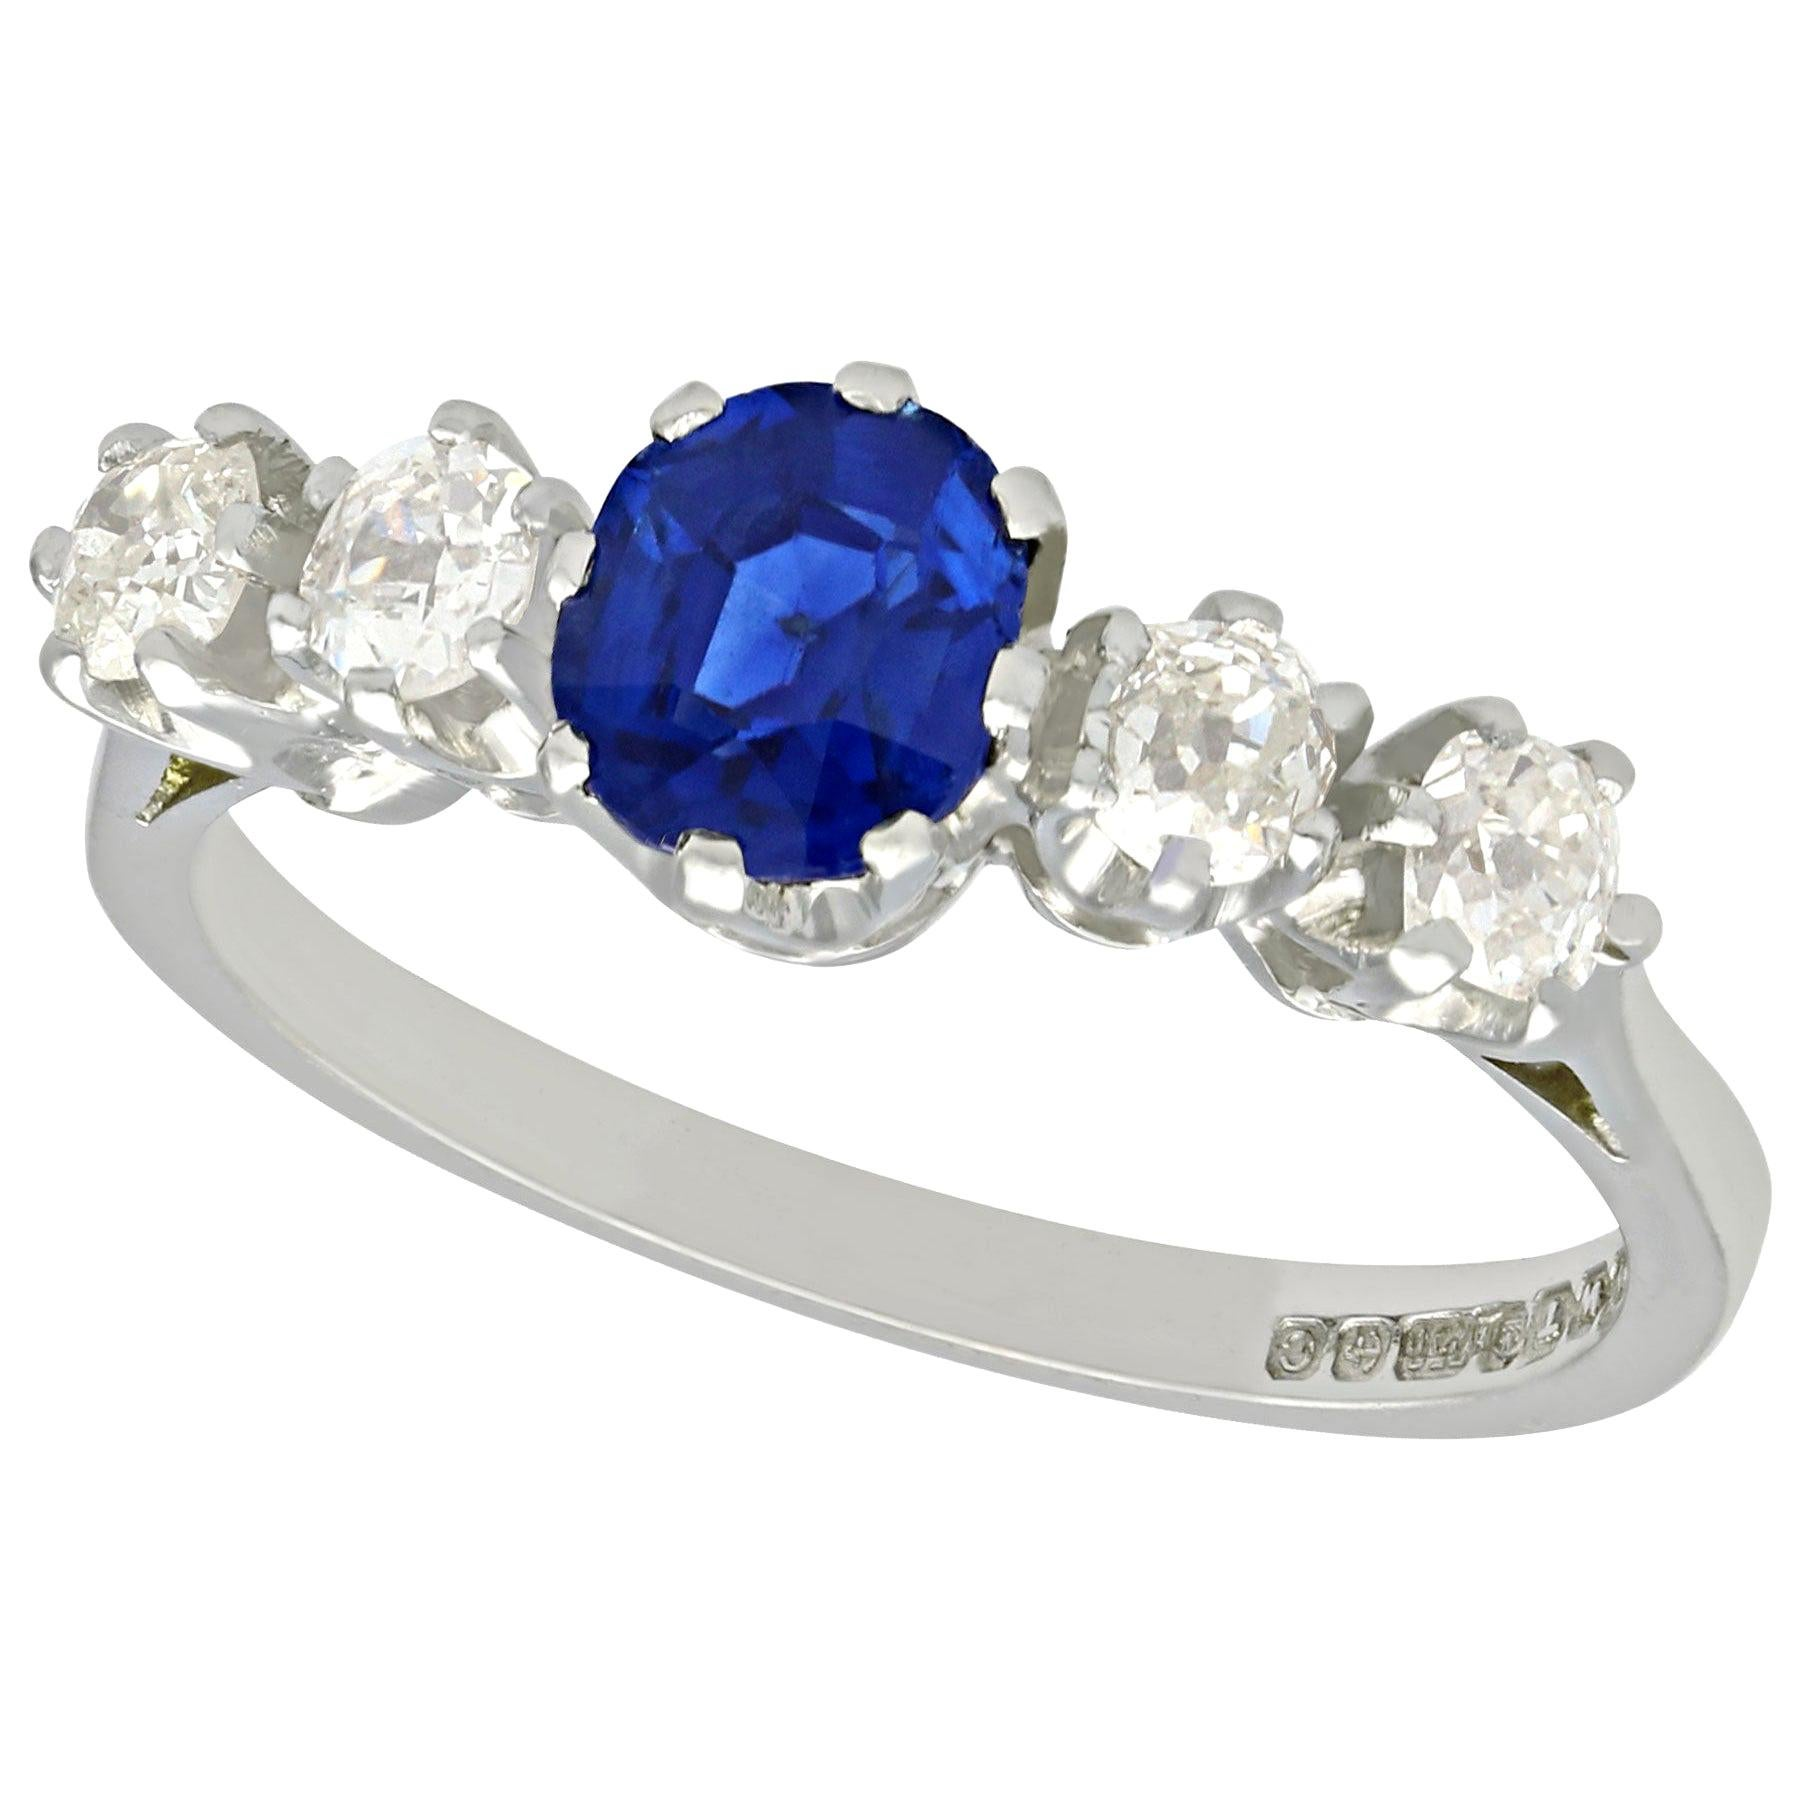 AGL Certified 1.19 Carat Sapphire and Diamond White Gold Ring